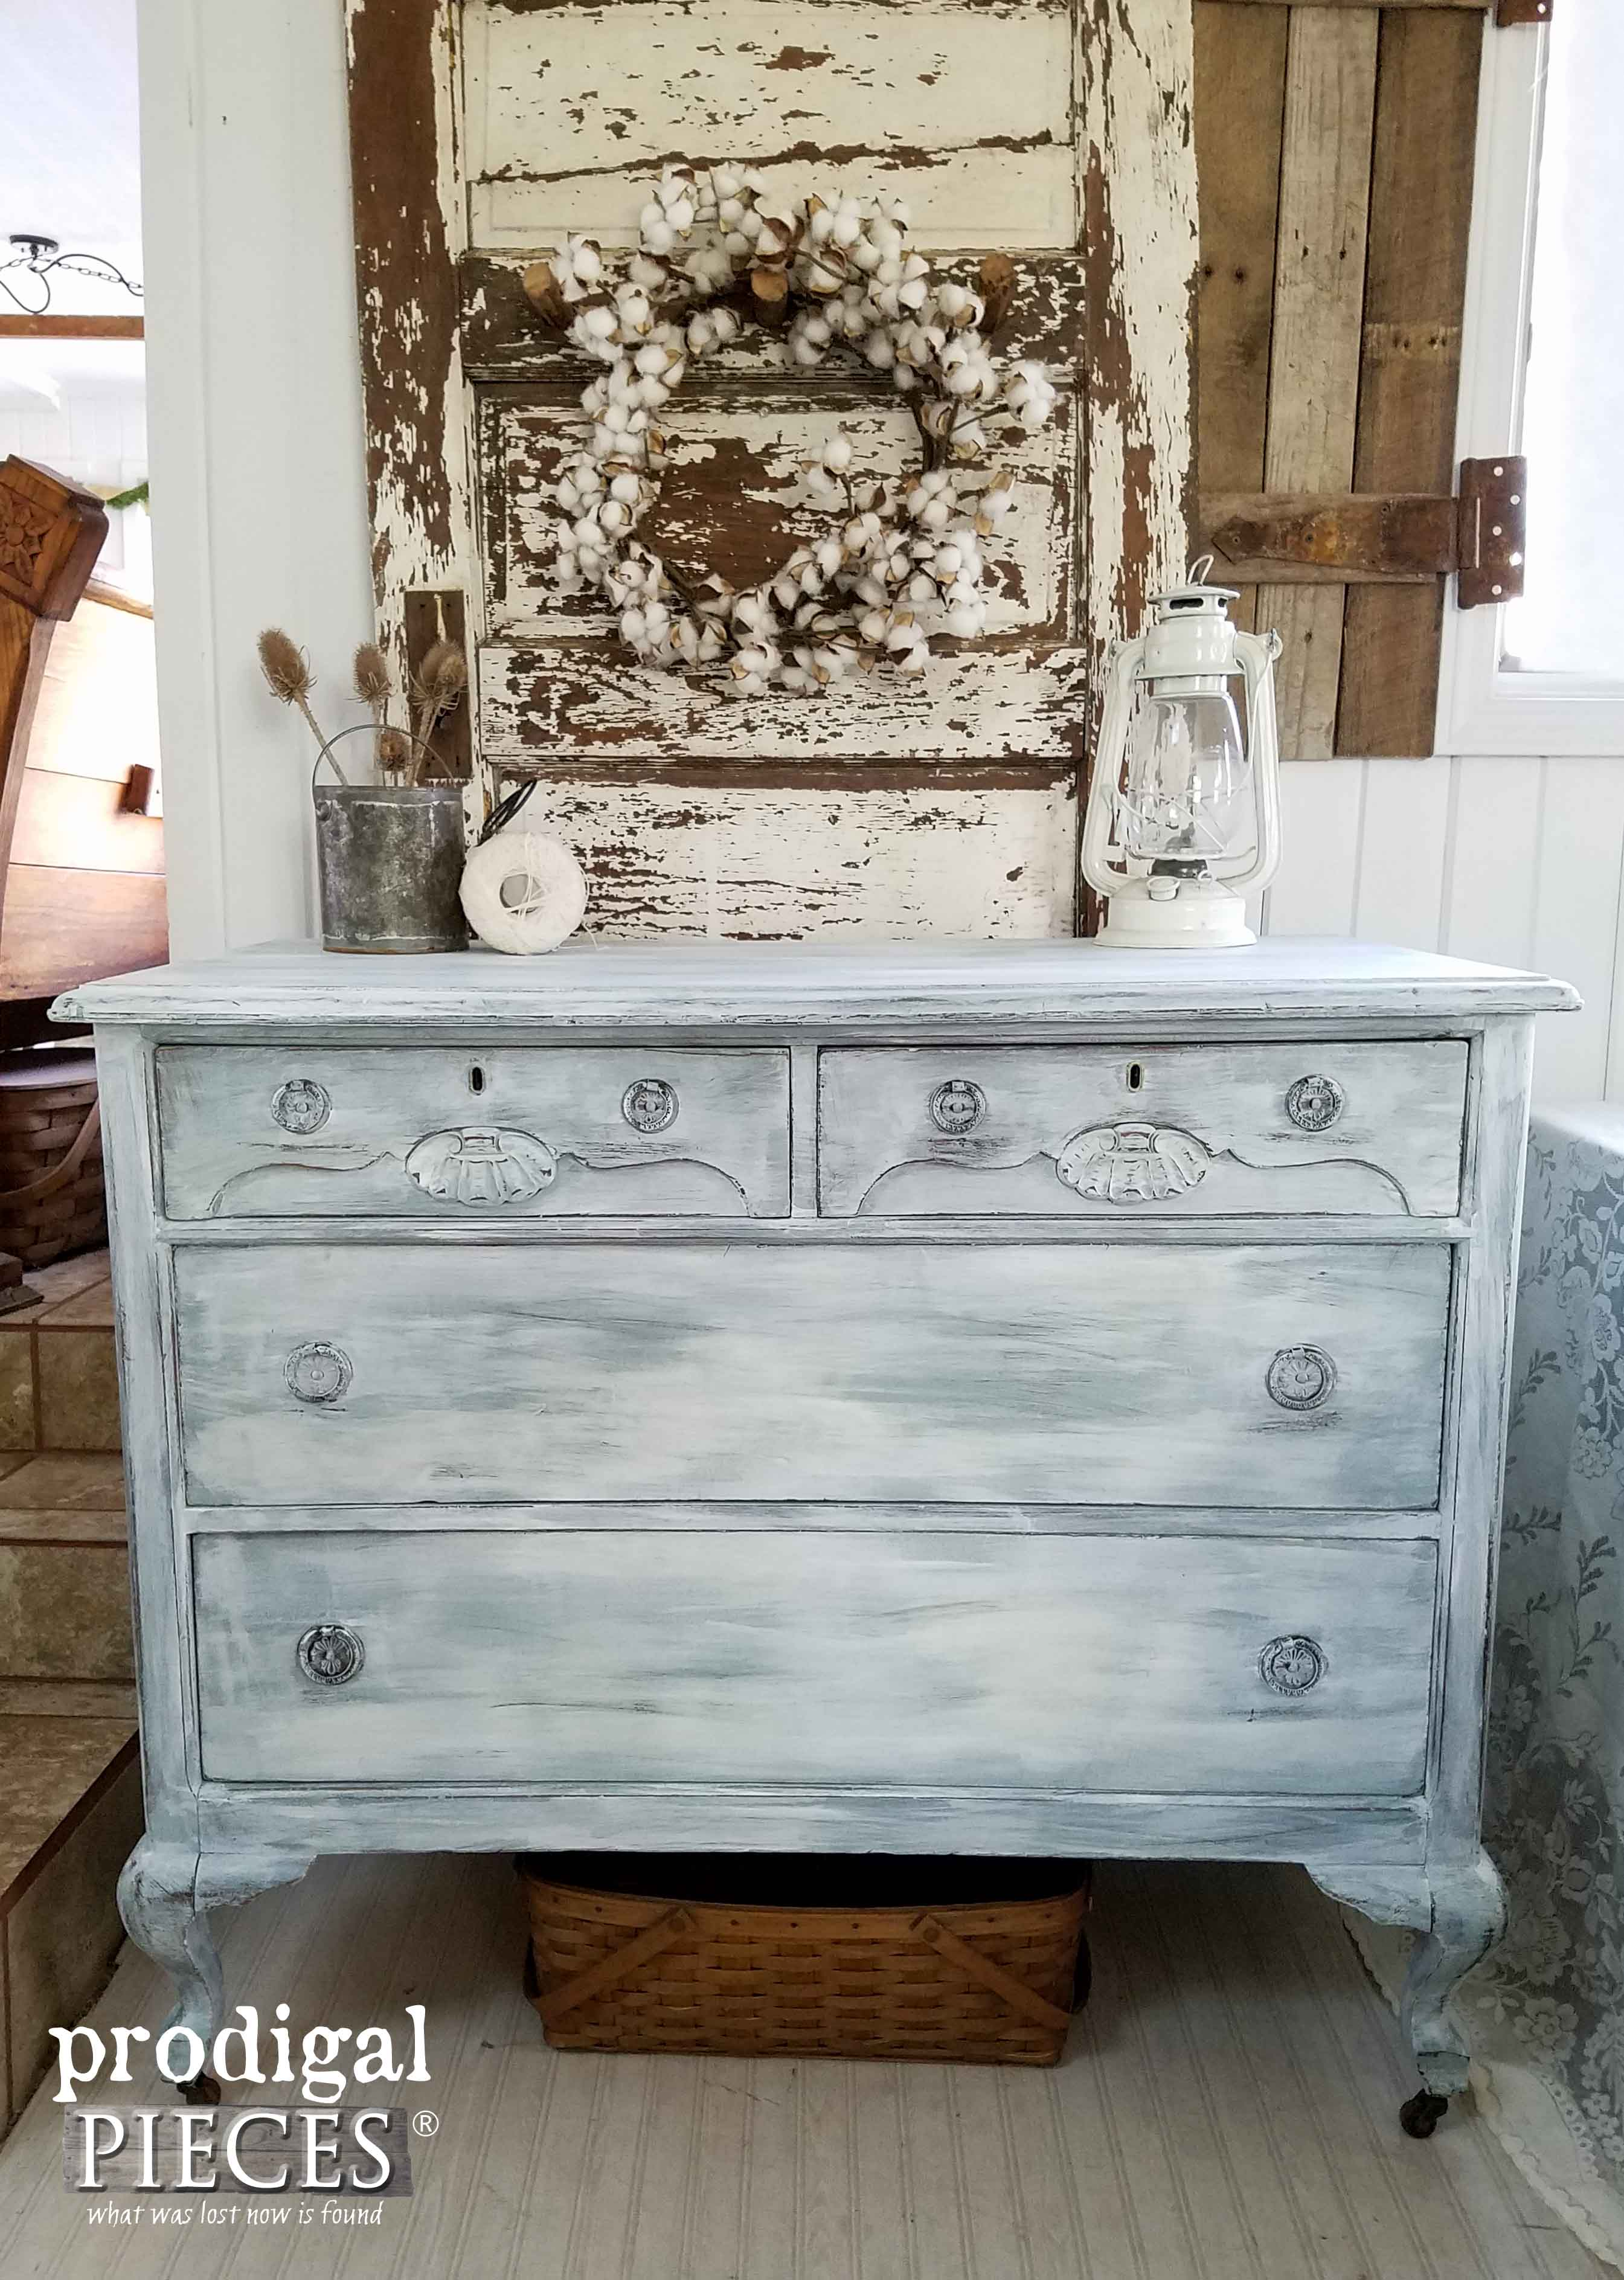 Damaged Dresser Made New with Farmhouse Chic Makeover by Prodigal Pieces | www.prodigalpieces.com